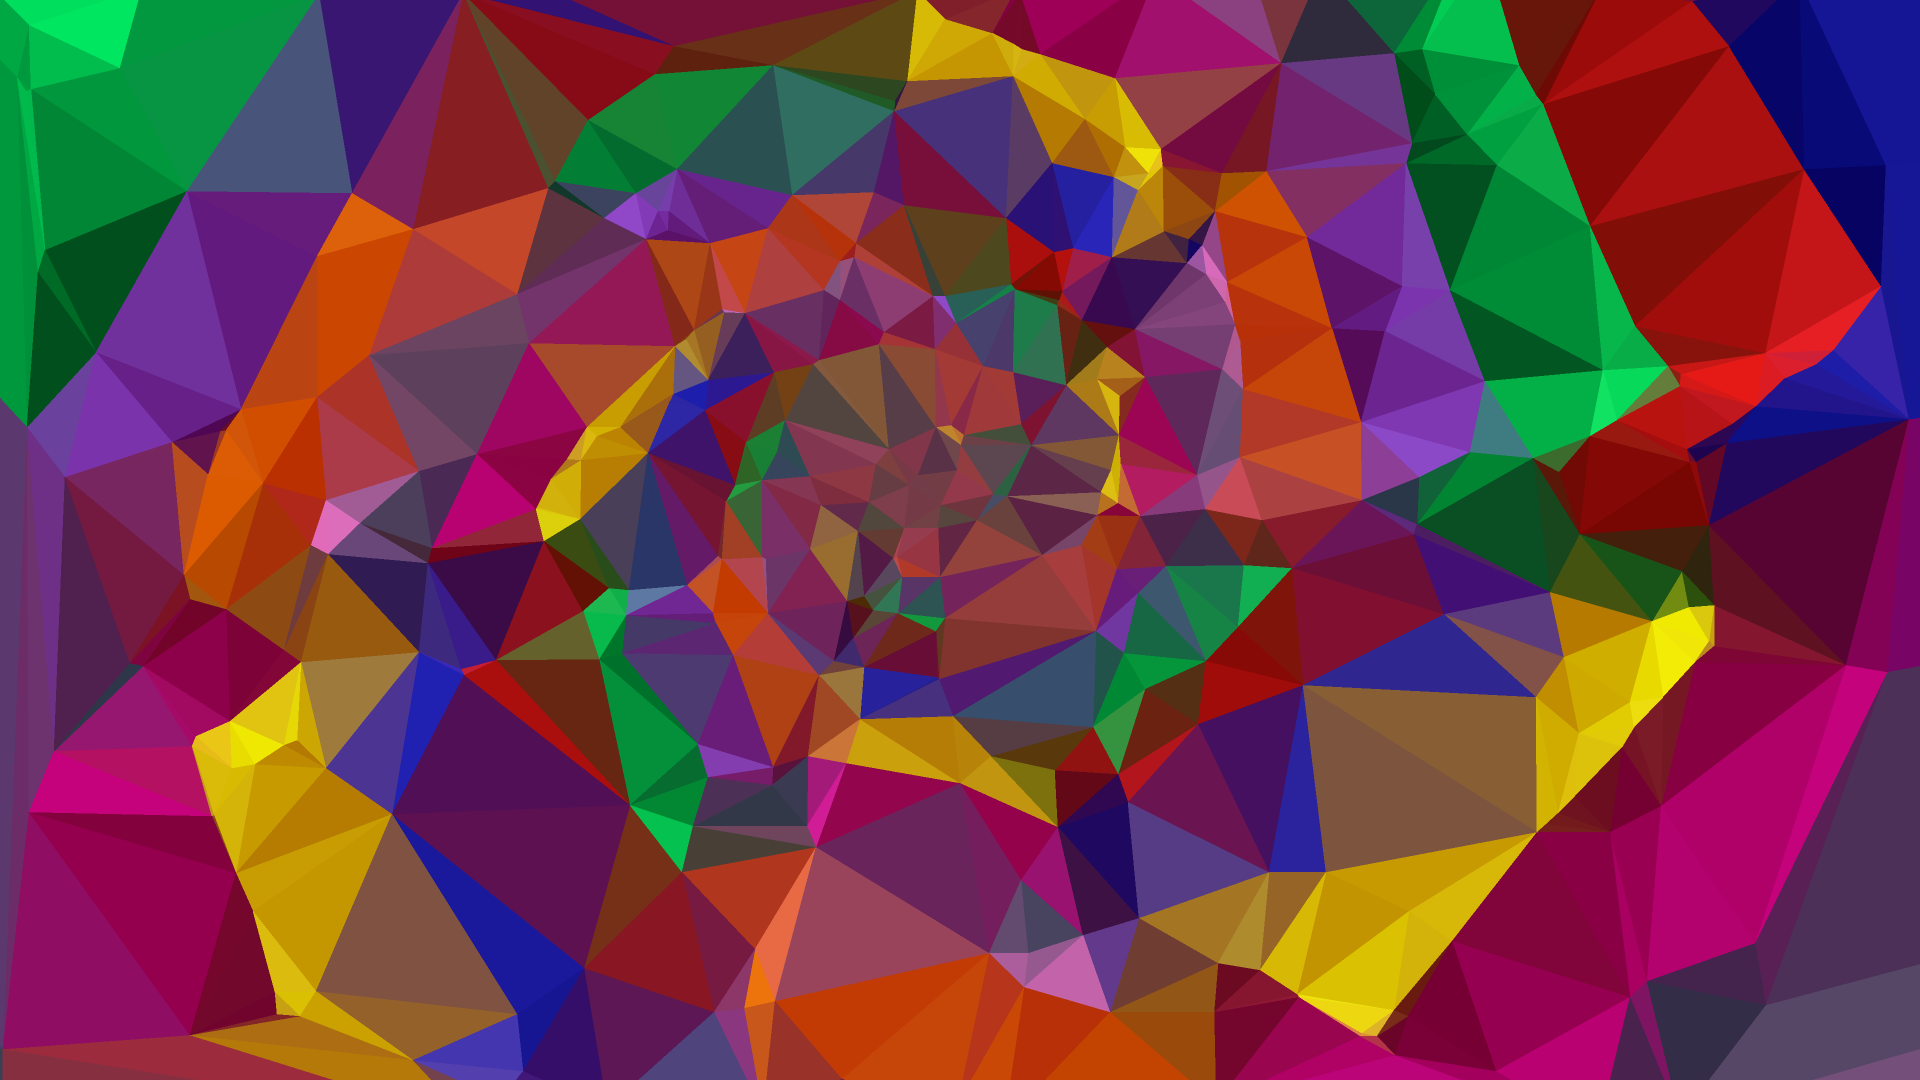 Wallpaper Geometric Color 31 1080p HD by AIRWORLDKING on DeviantArt